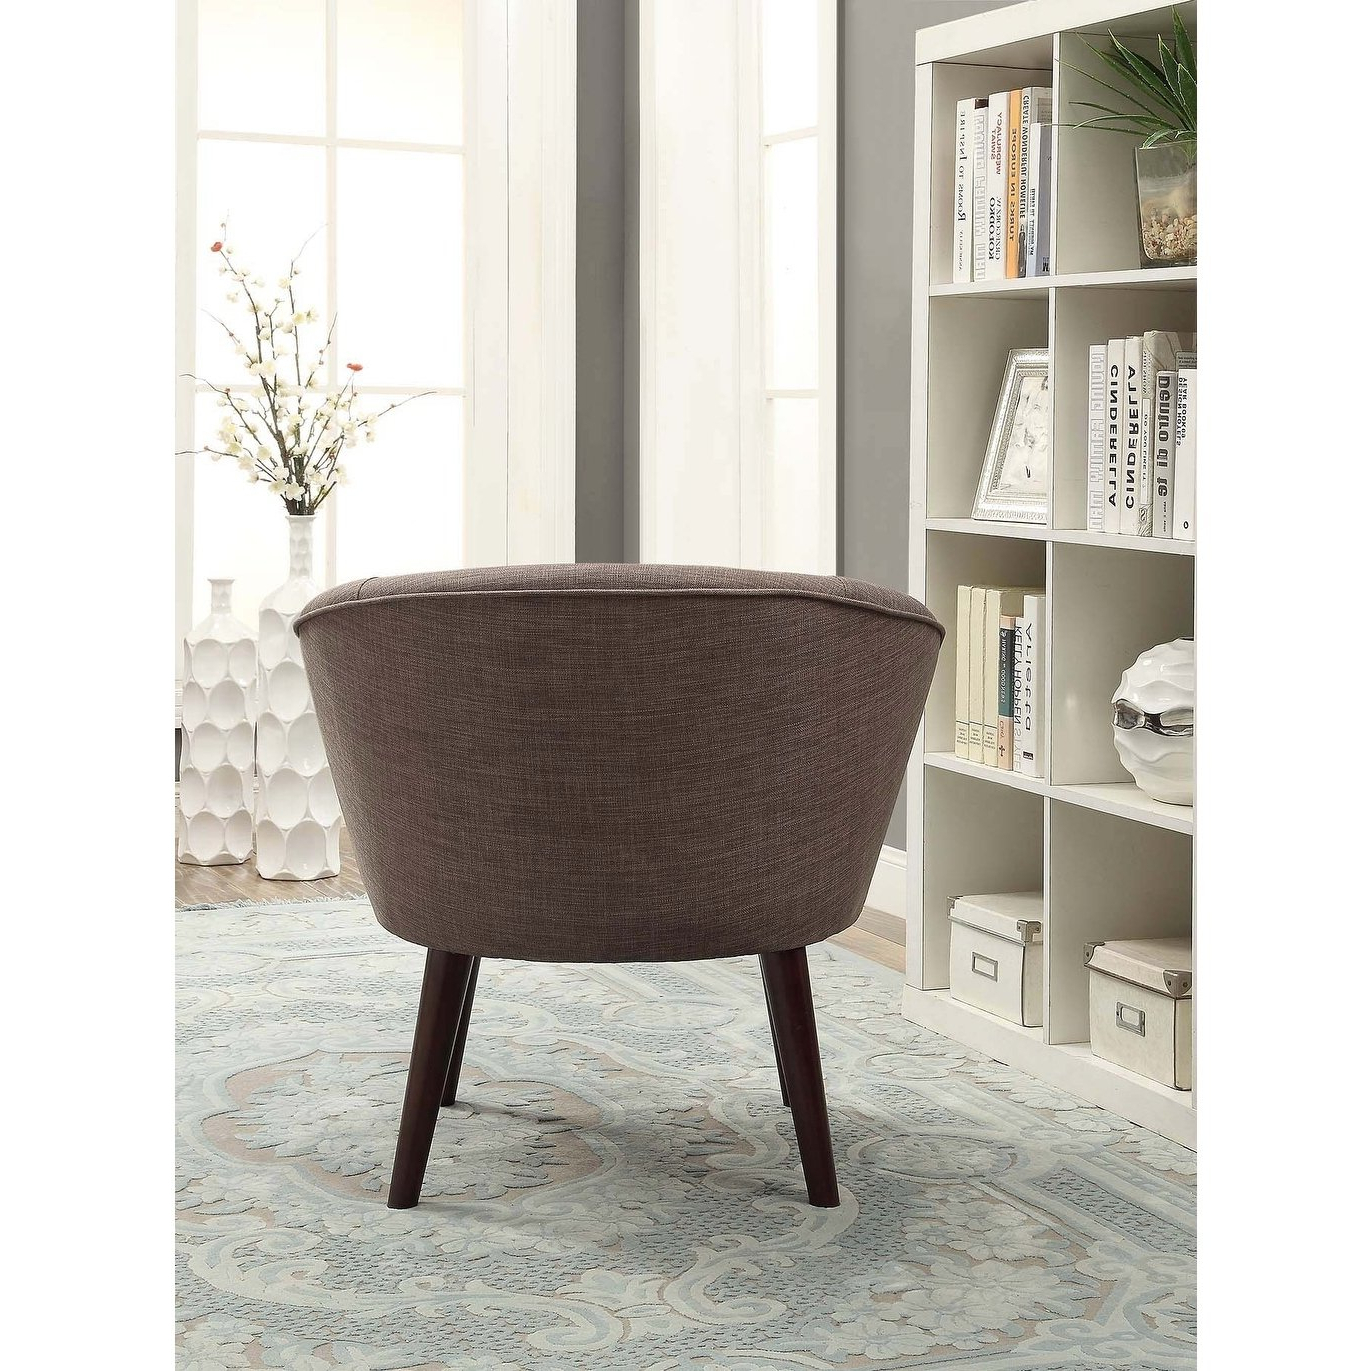 Shop Acme Amari Accent Chair In Stone Gray Linen – Free Shipping With Regard To Most Recent Amari Swivel Accent Chairs (Gallery 10 of 20)